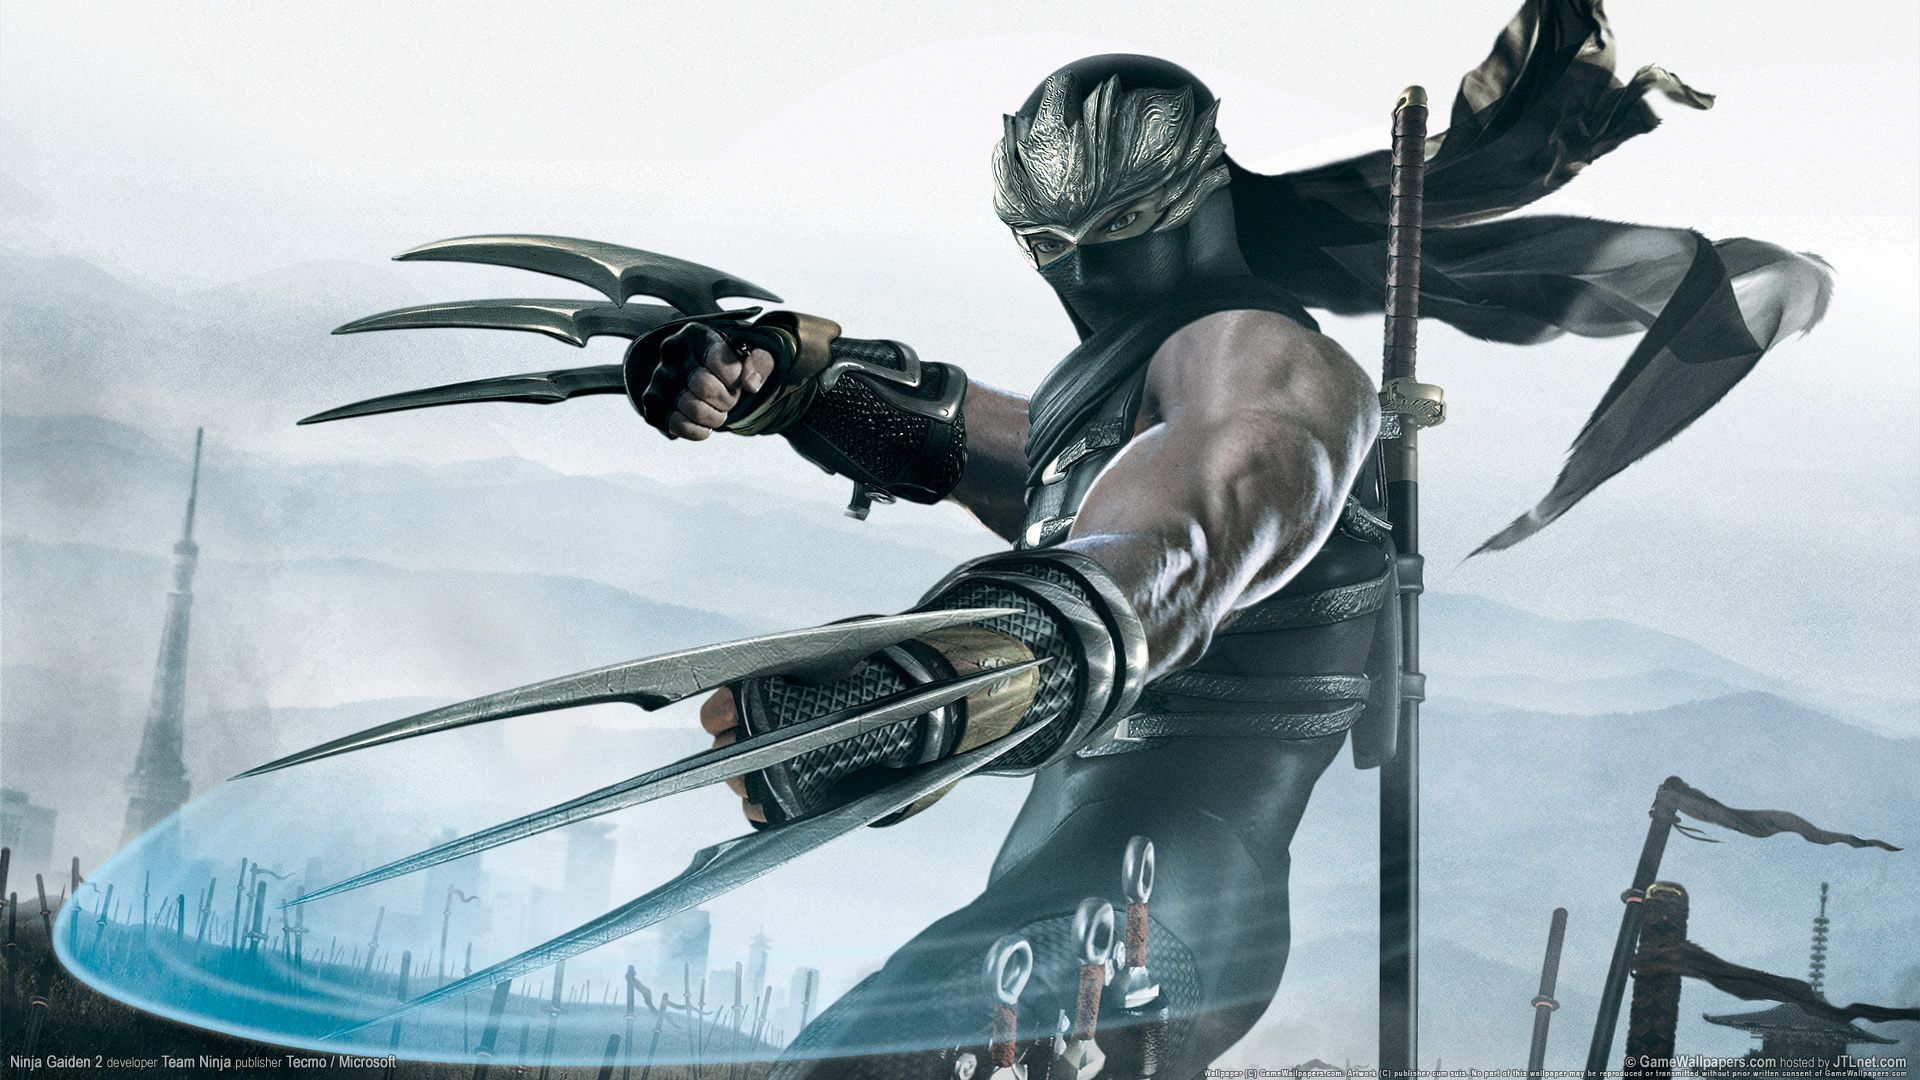 Ninja Gaiden 2 Hdtv 1080p Hd Game Wallpapers Ninja Gaiden